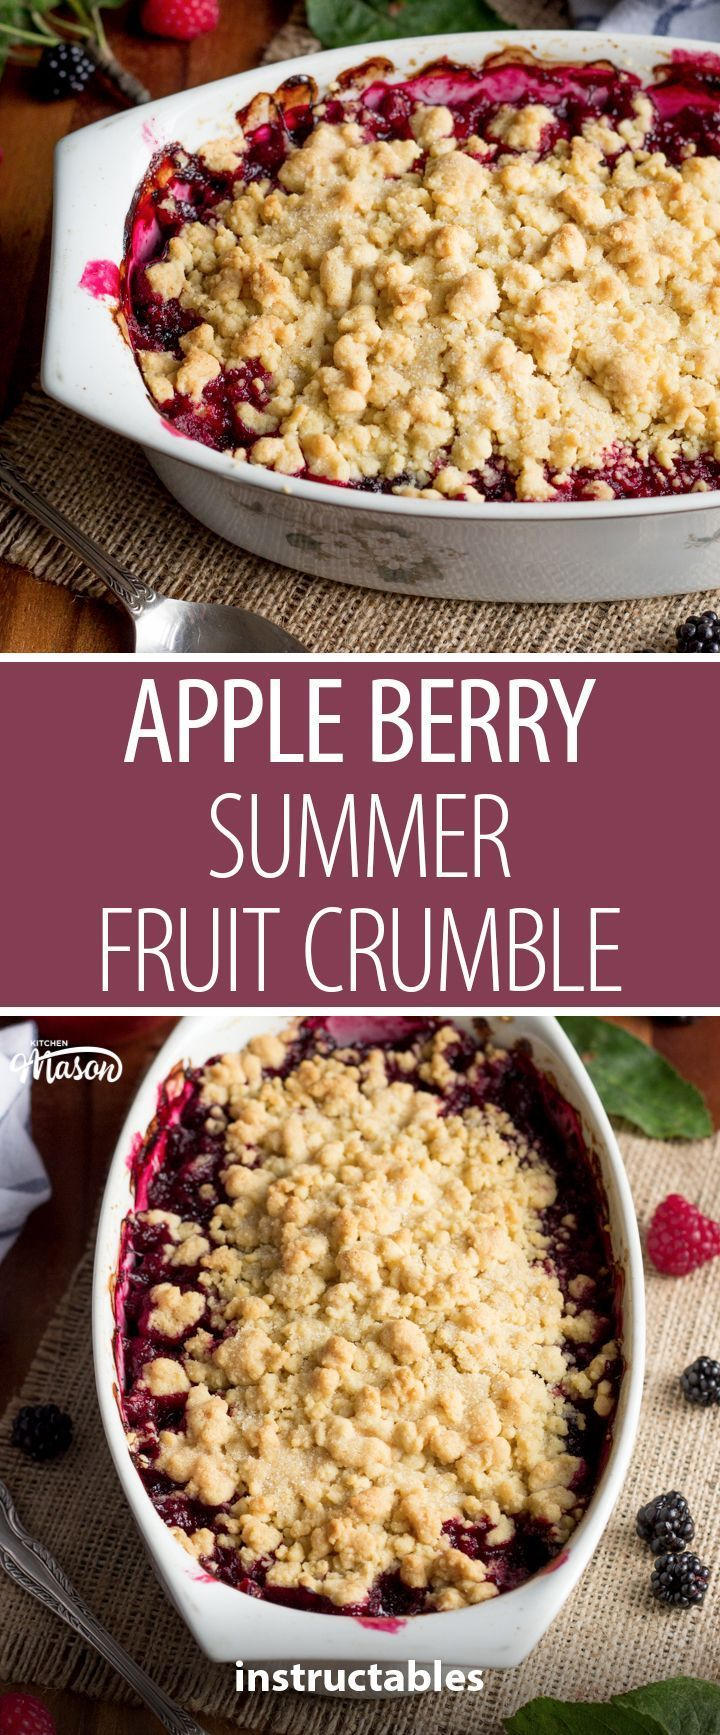 How to Make an Apple Berry Summer Fruit Crumble